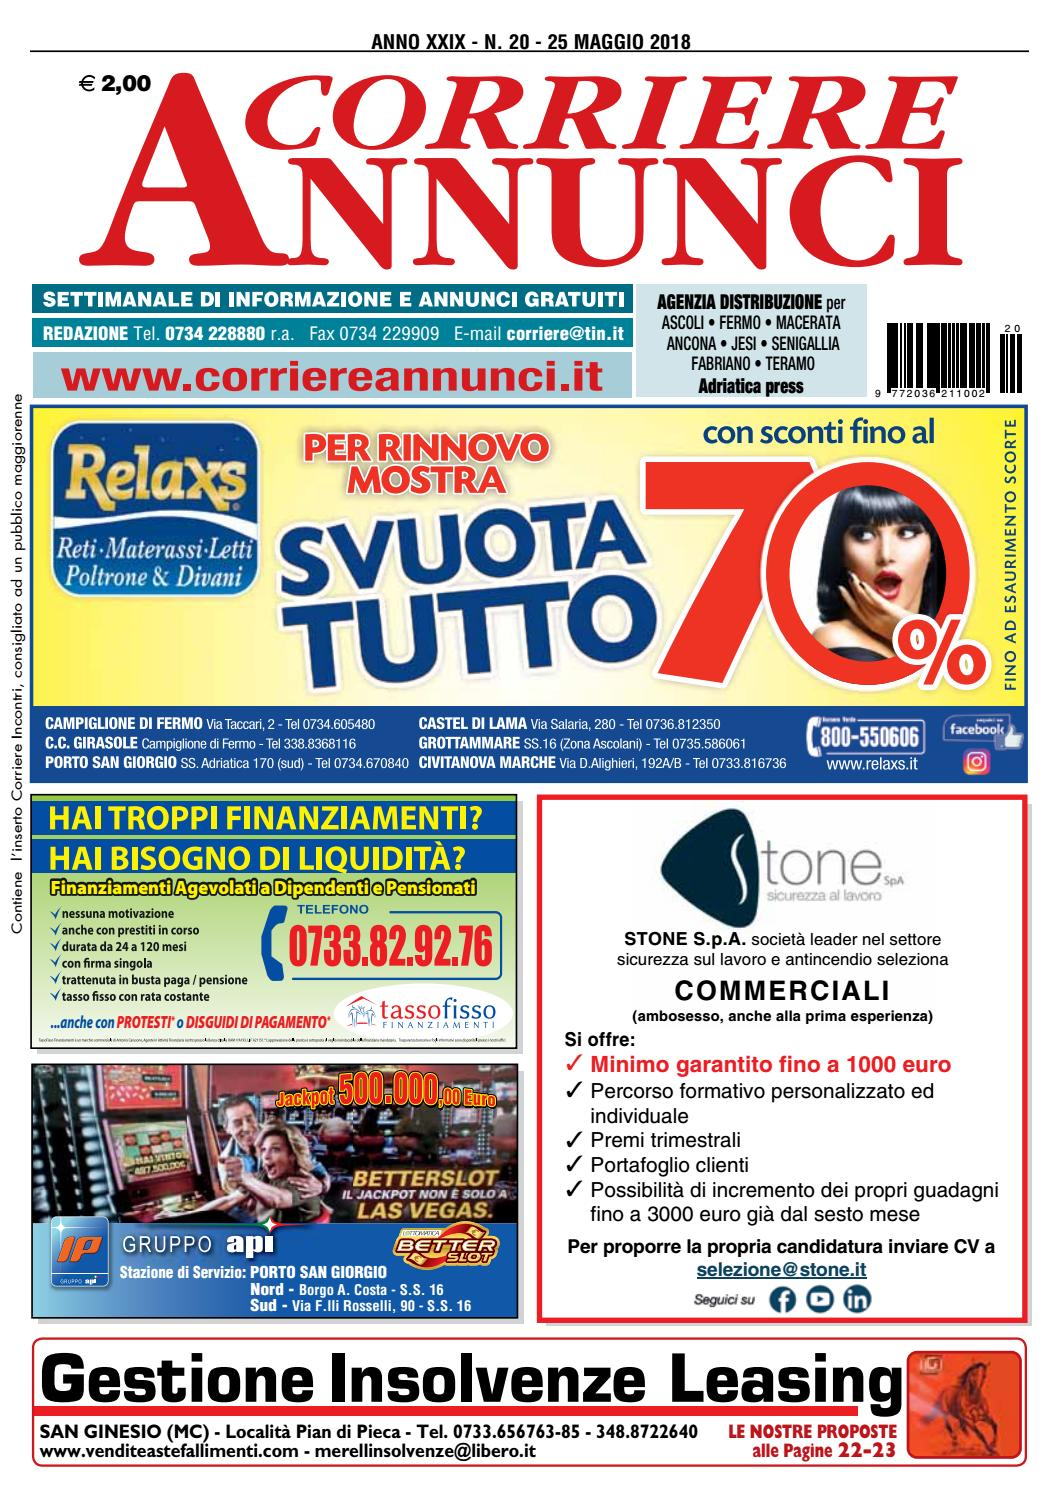 Corrier20 2018 by Corriere Annunci - issuu 331ec089d98f